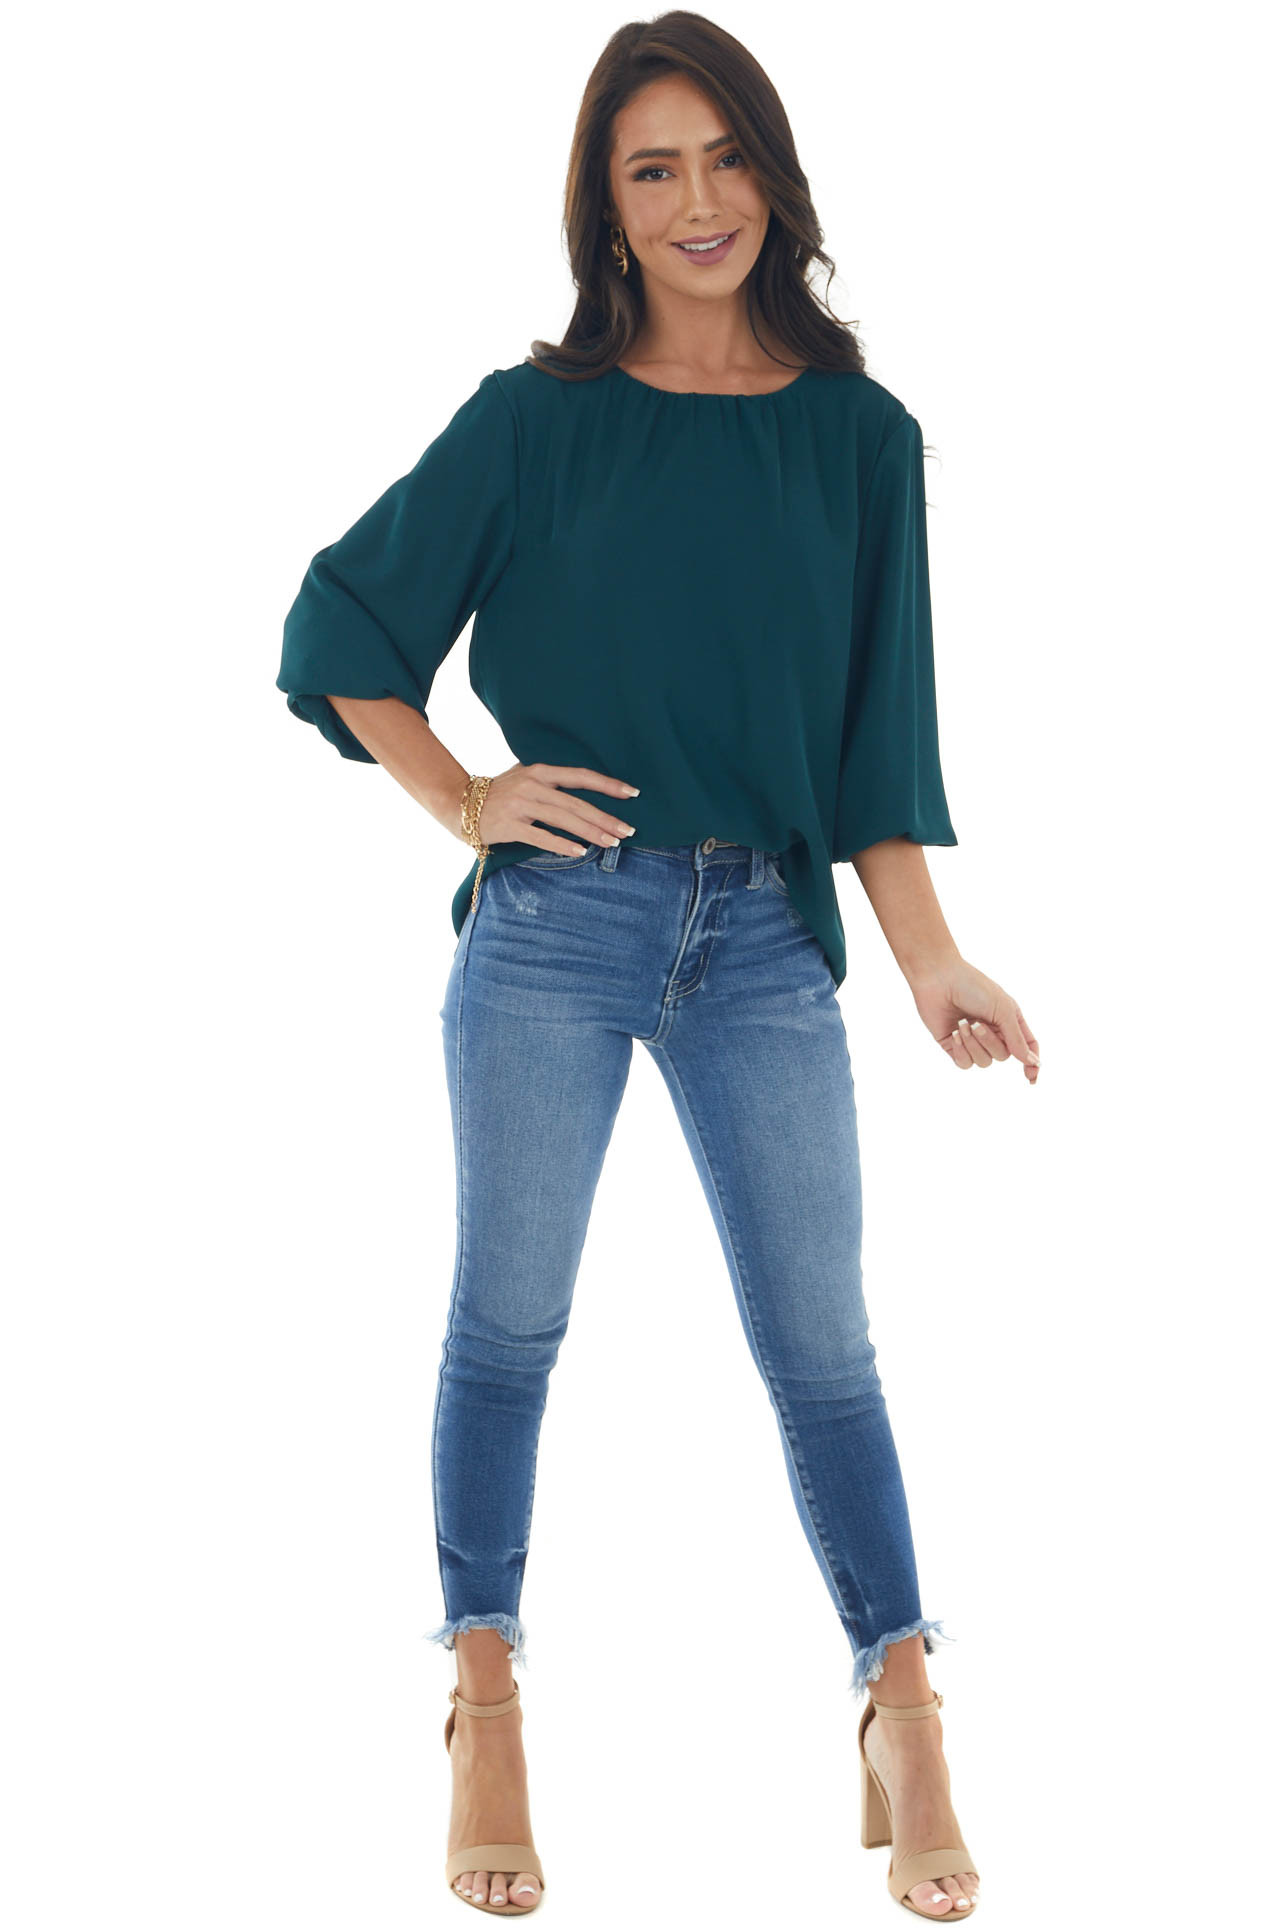 Pine 3/4 Puff Sleeve Blouse with Keyhole Back